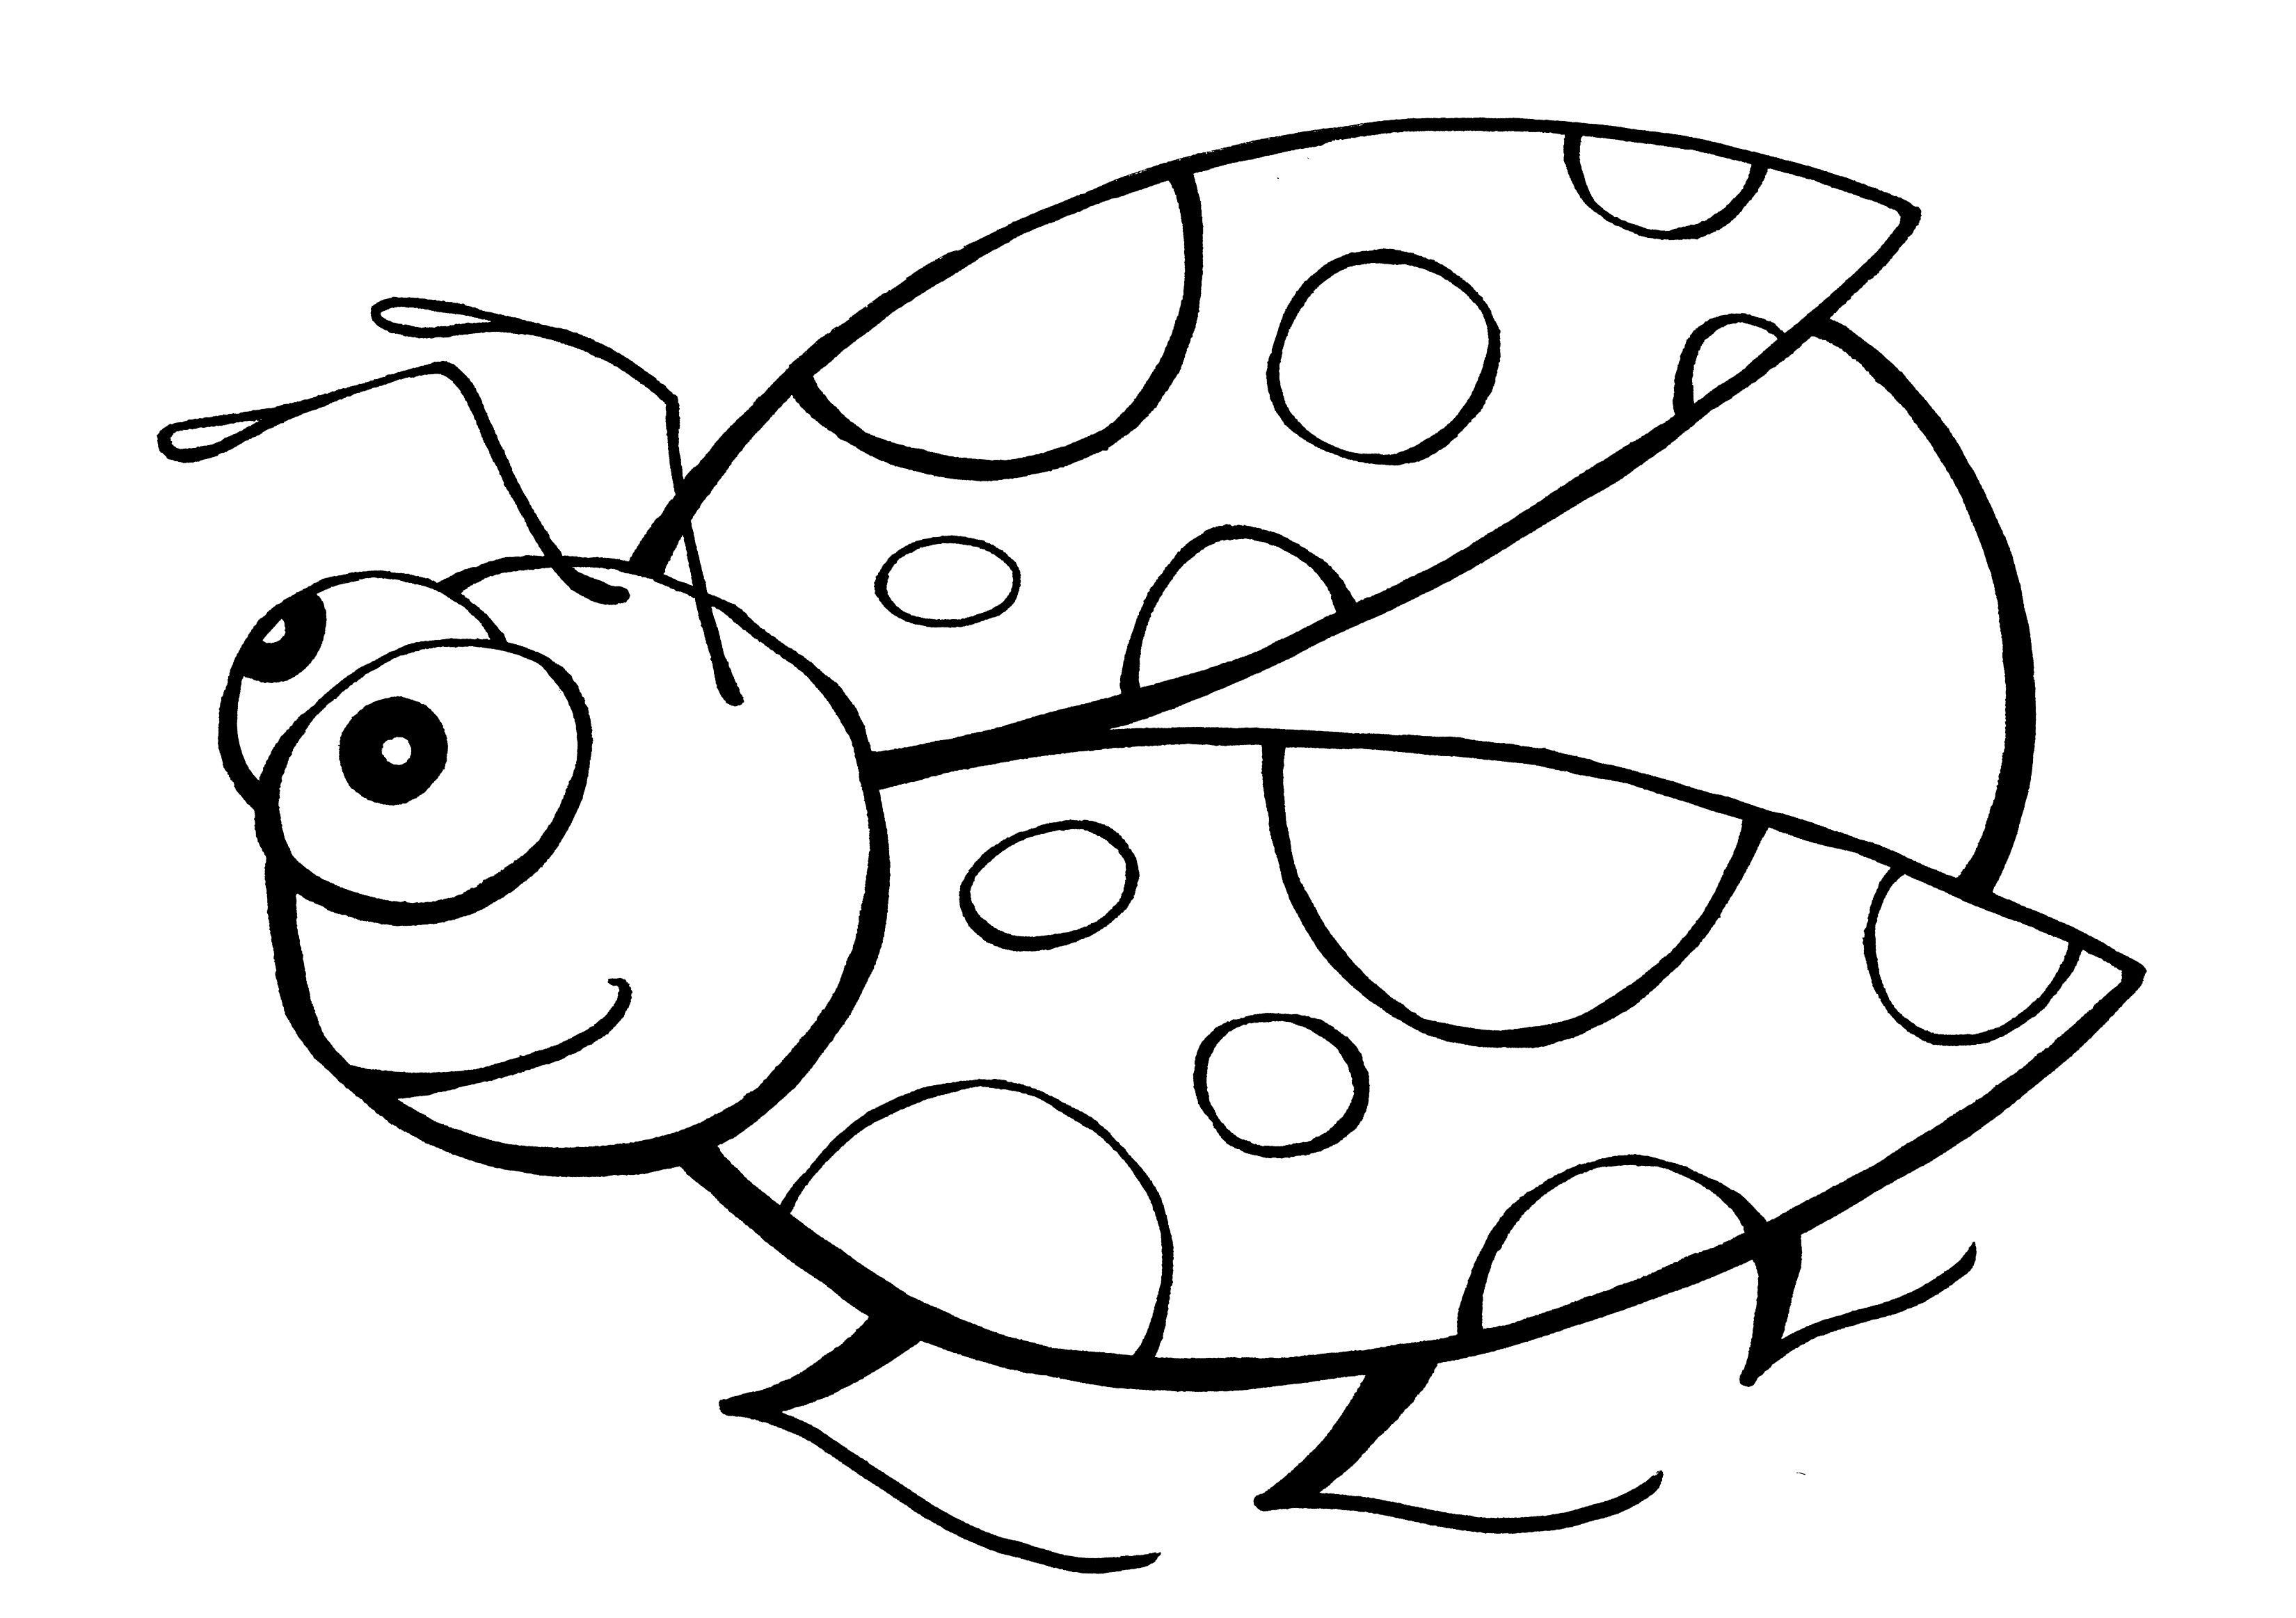 insect coloring pictures insects for kids insects kids coloring pages pictures insect coloring